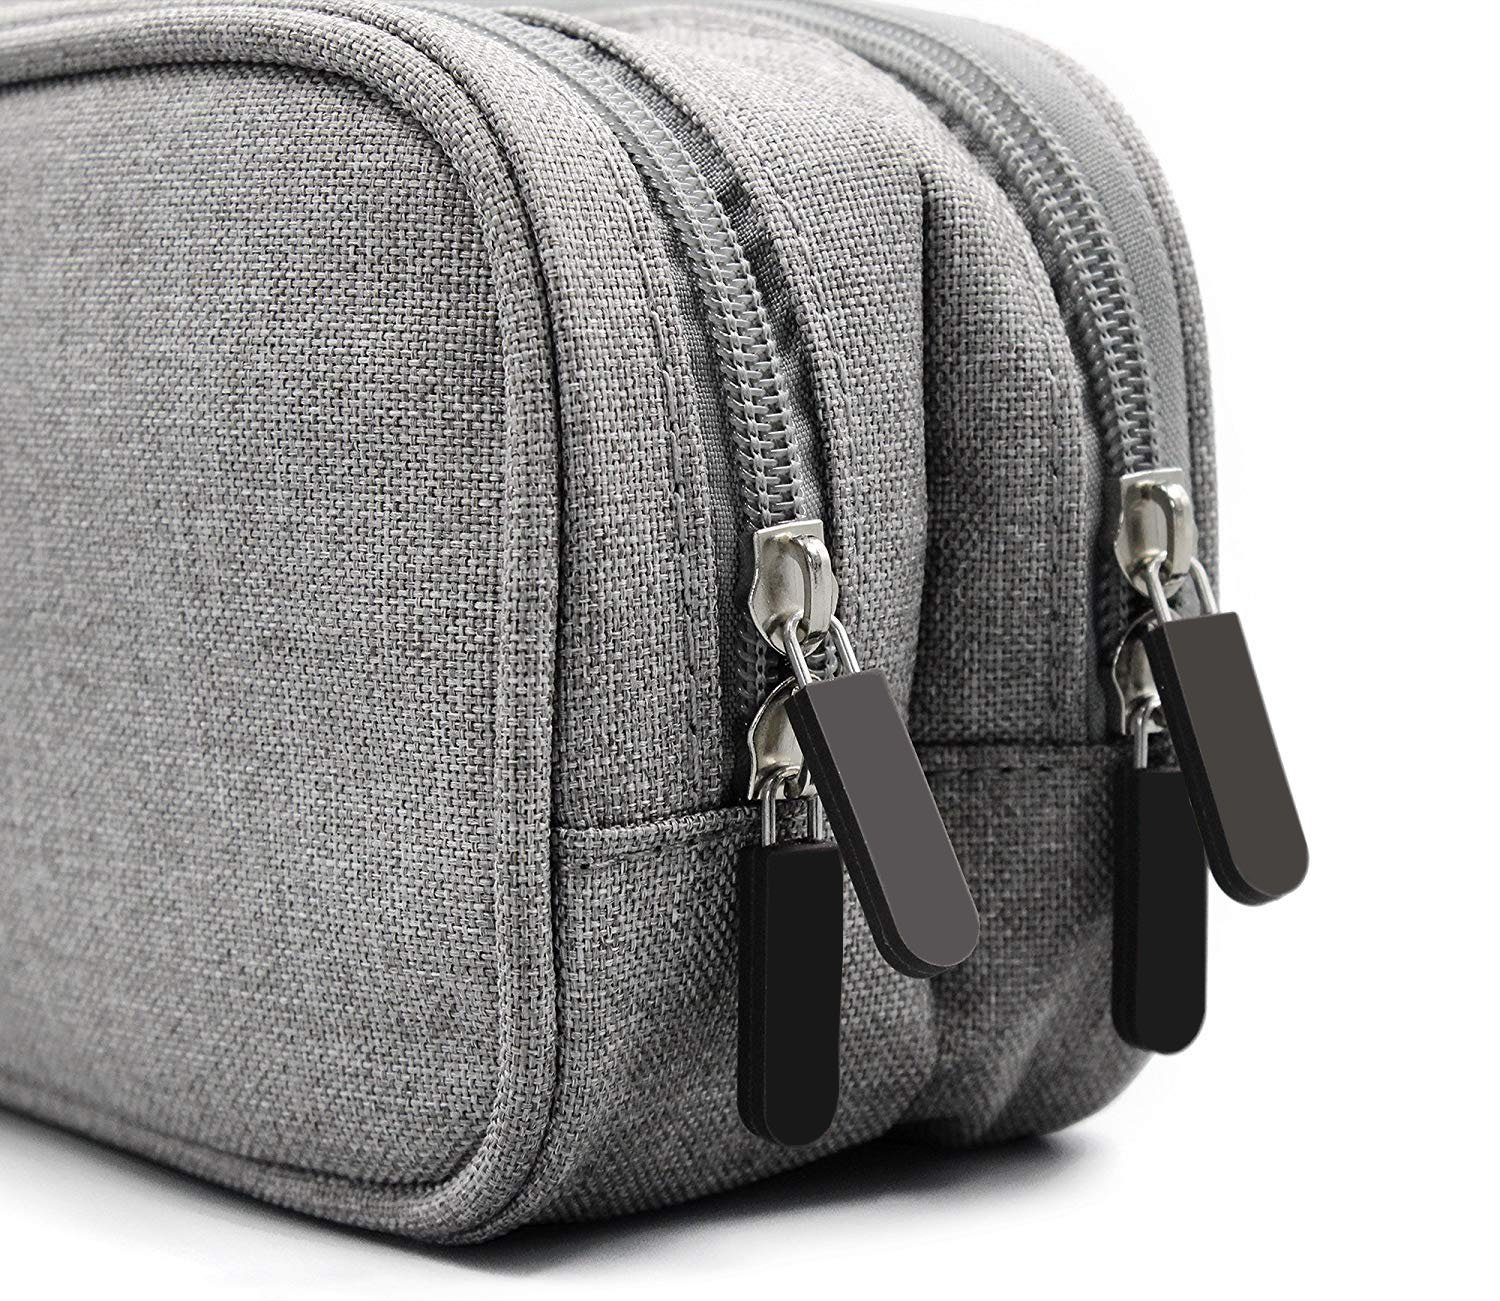 Electronics Accessories Organizer Bag, Double Layer Cable Cord Management Bag, Travel Camping Gear, Small Gadget Pouch for Plugs, Earphone and More(Grey) by YOYL (Image #7)